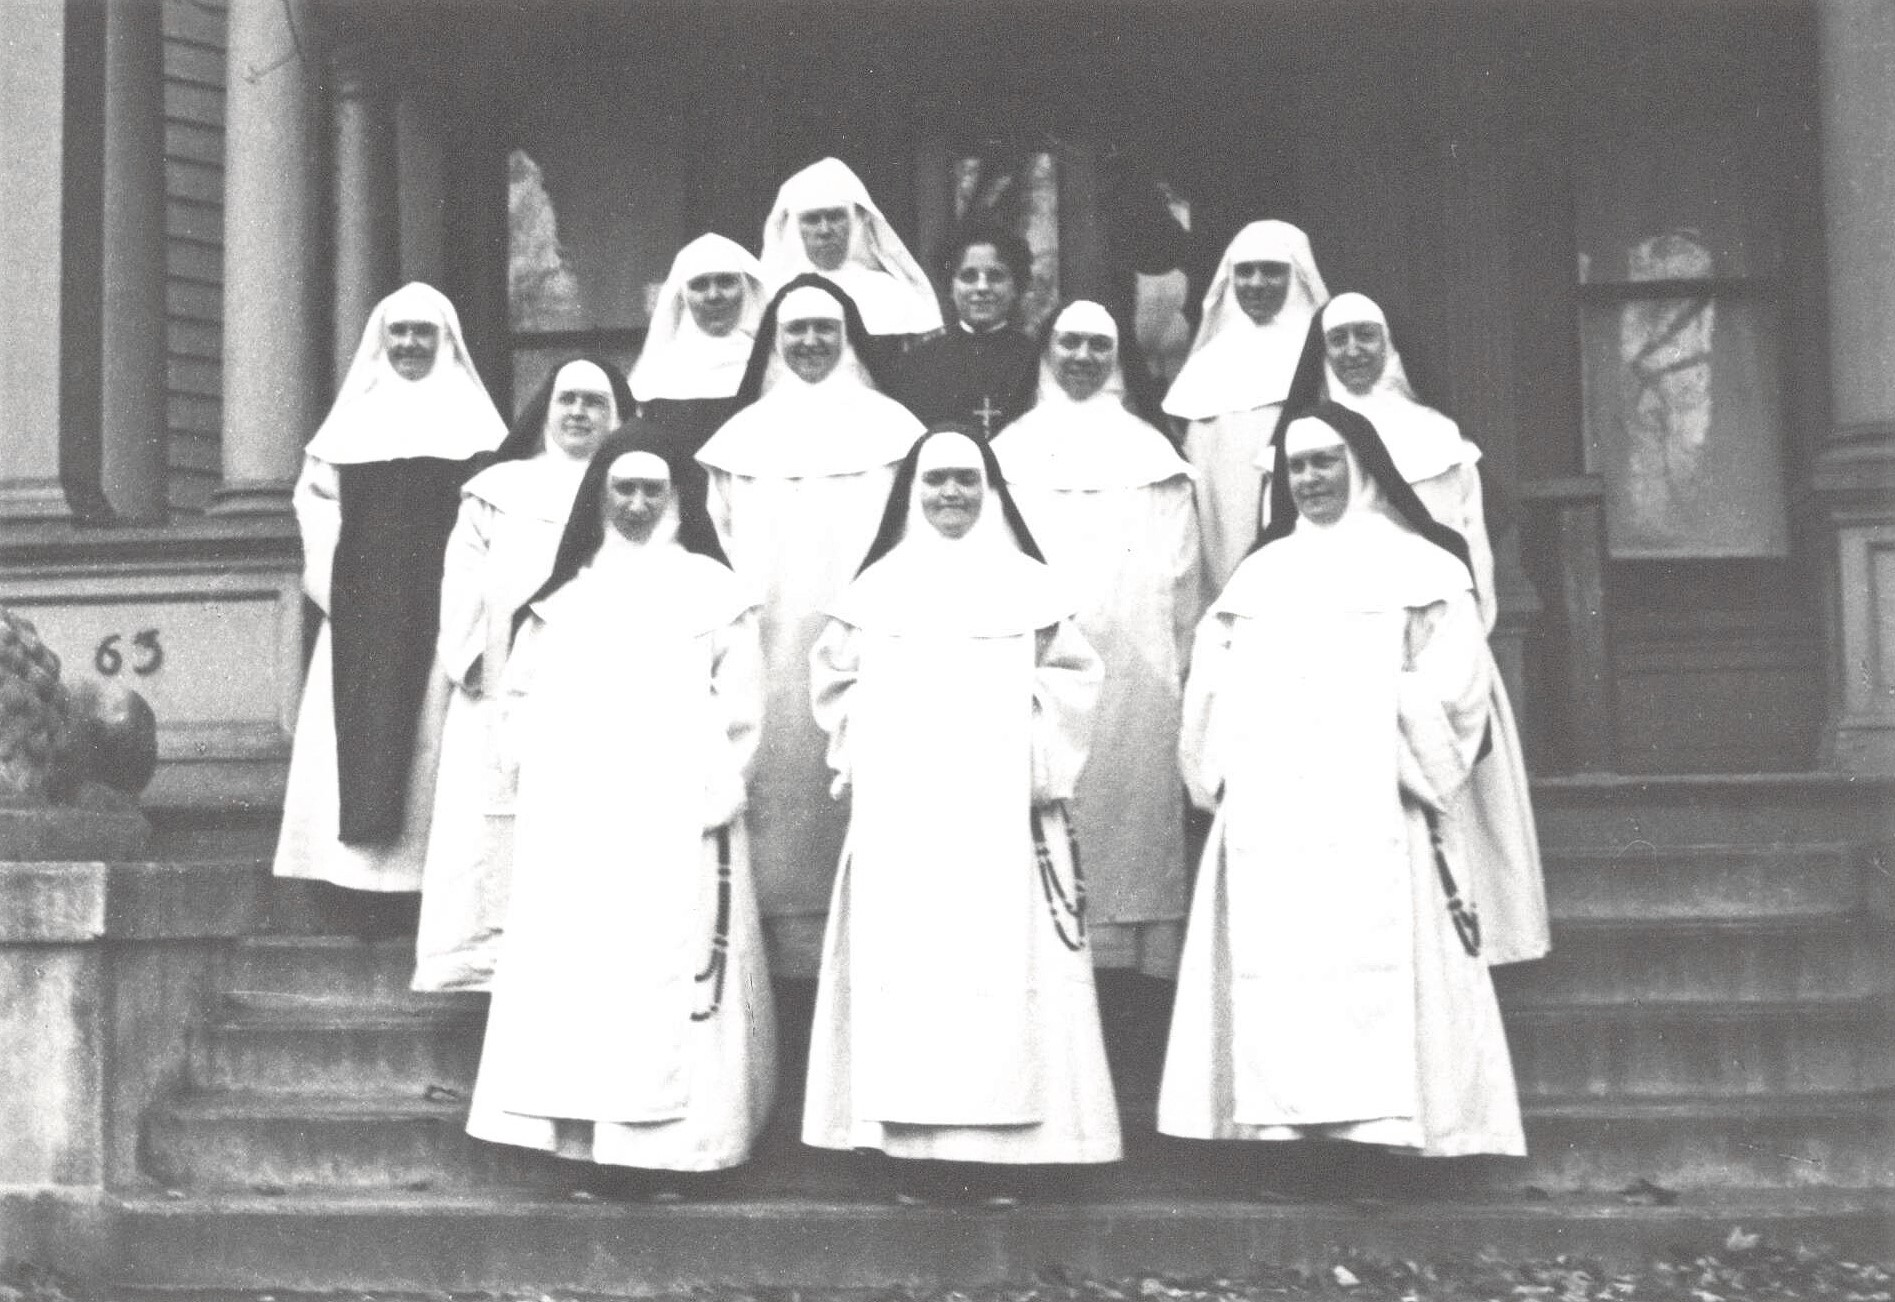 The founding sisters in 1919, on the front steps of the first monastery. Two lay sisters are missing from the picture.